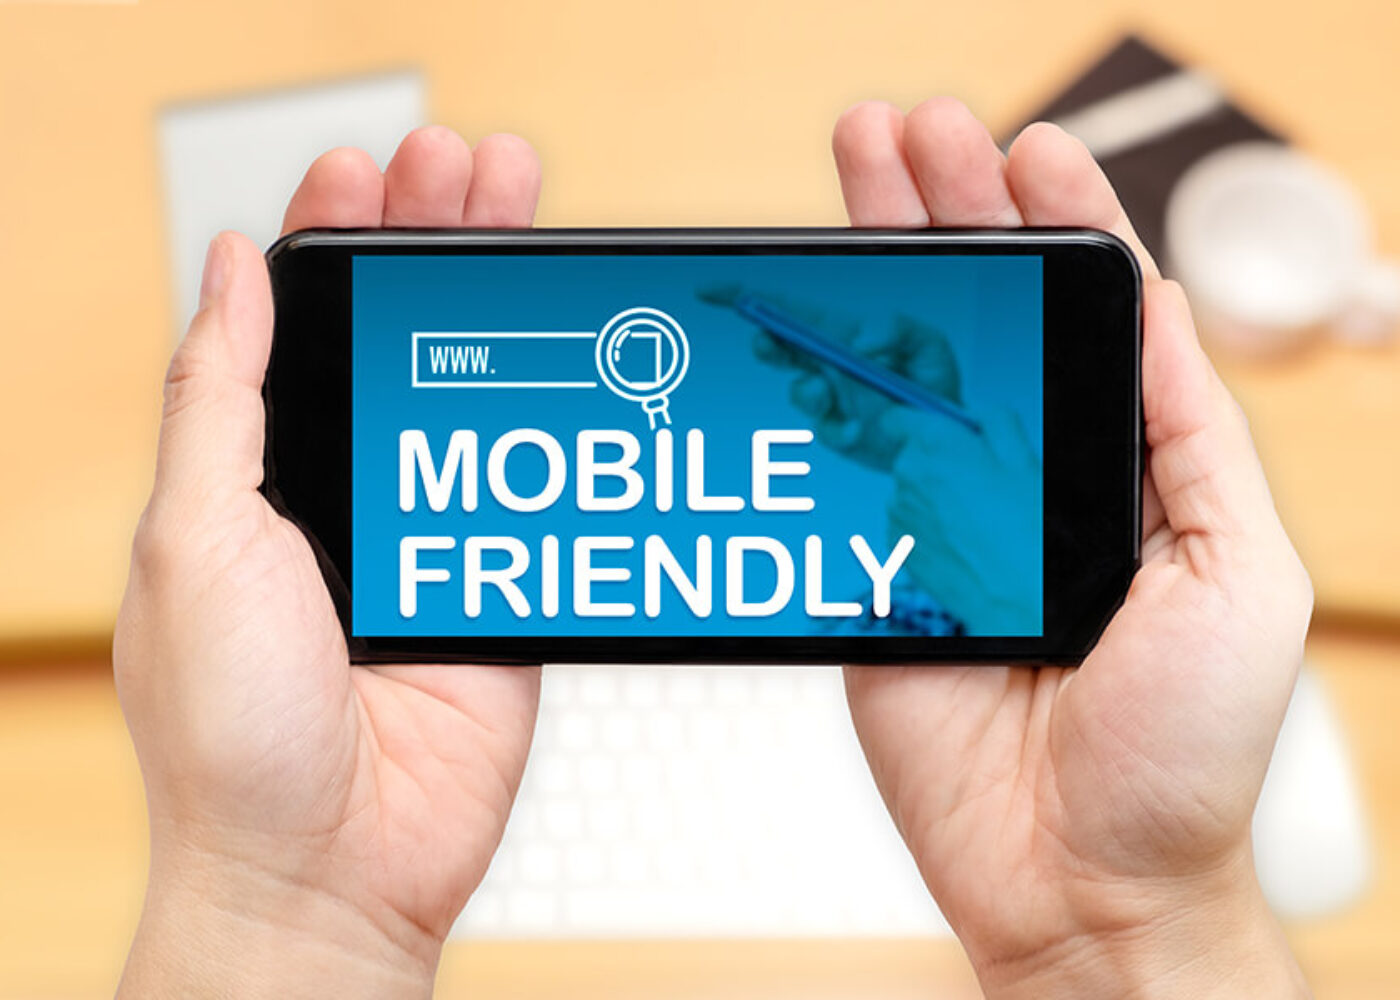 How do I convert my website to be mobile-friendly?